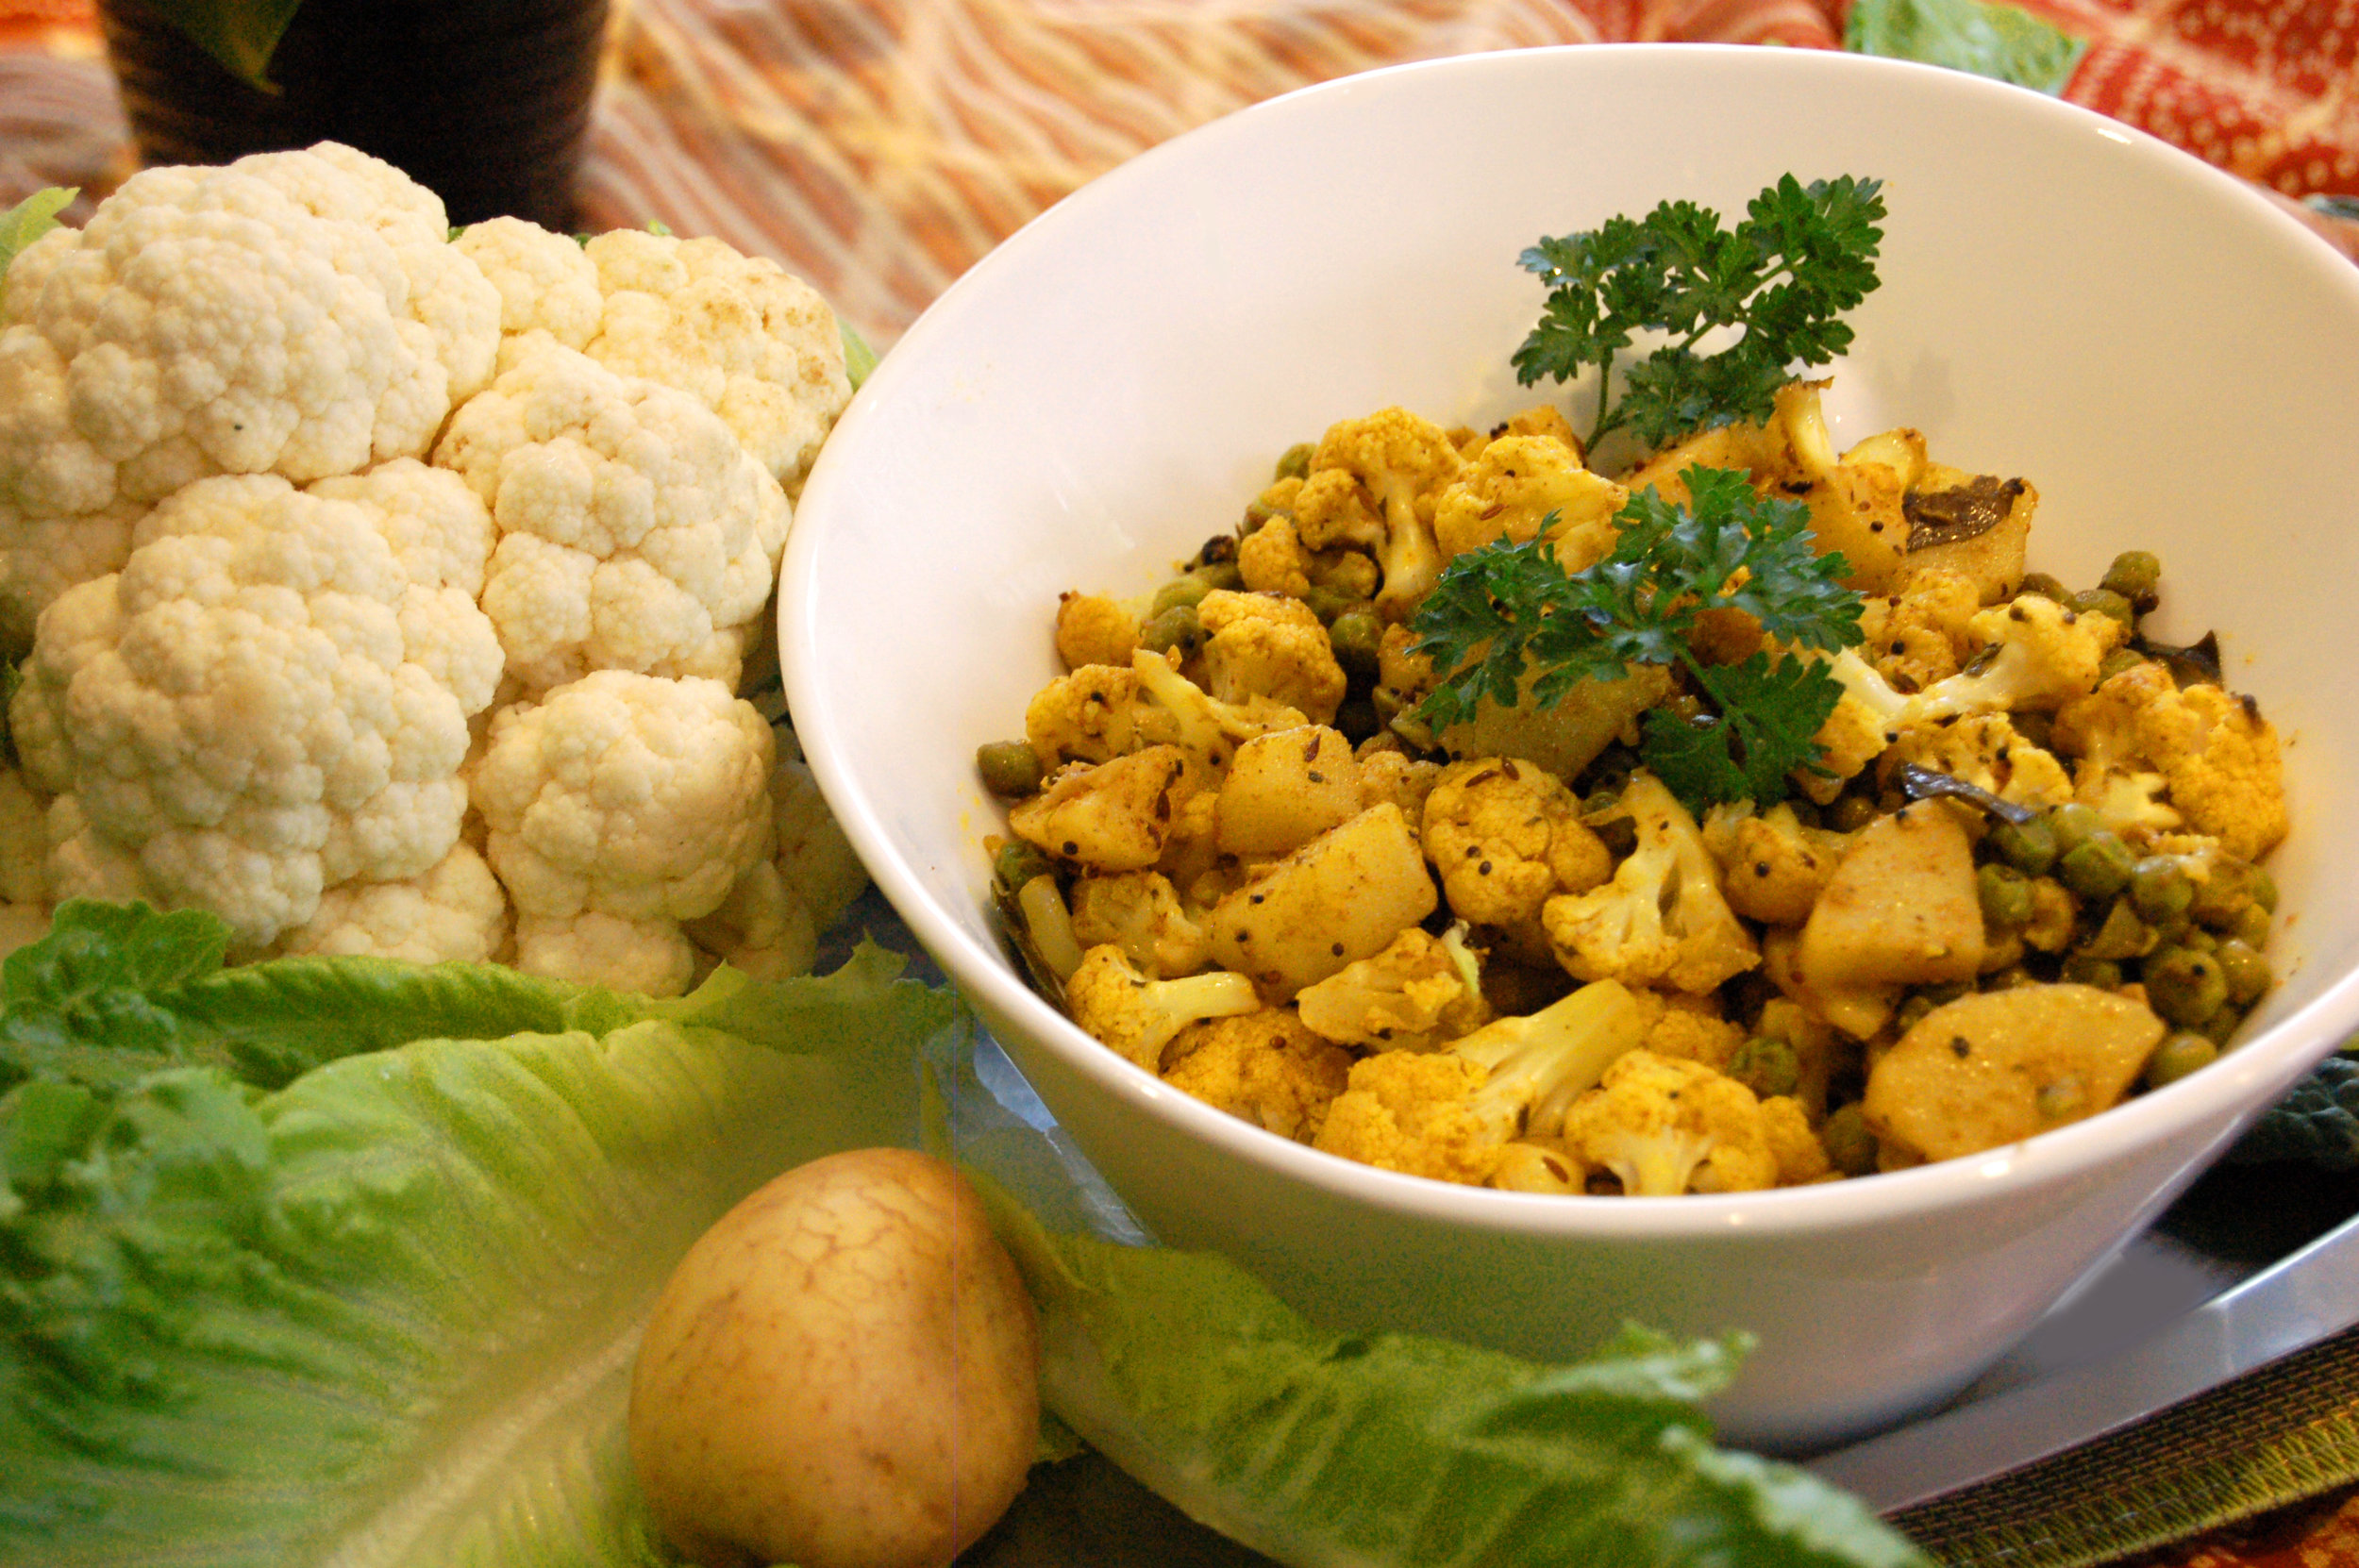 ALOO GOBI - Cauliflower & Potato Curry with Peas - {Made with Arvinda's Madras Masala}If you say you don't like cauliflower, then you haven't tried Aloo Gobi! Hailing from northern India, this classic vegetable curry can be made dry (without tomatoes) or with tomatoes in a curry sauce. Our version is the dry option and pairs as a delicious side to any Indian meal.